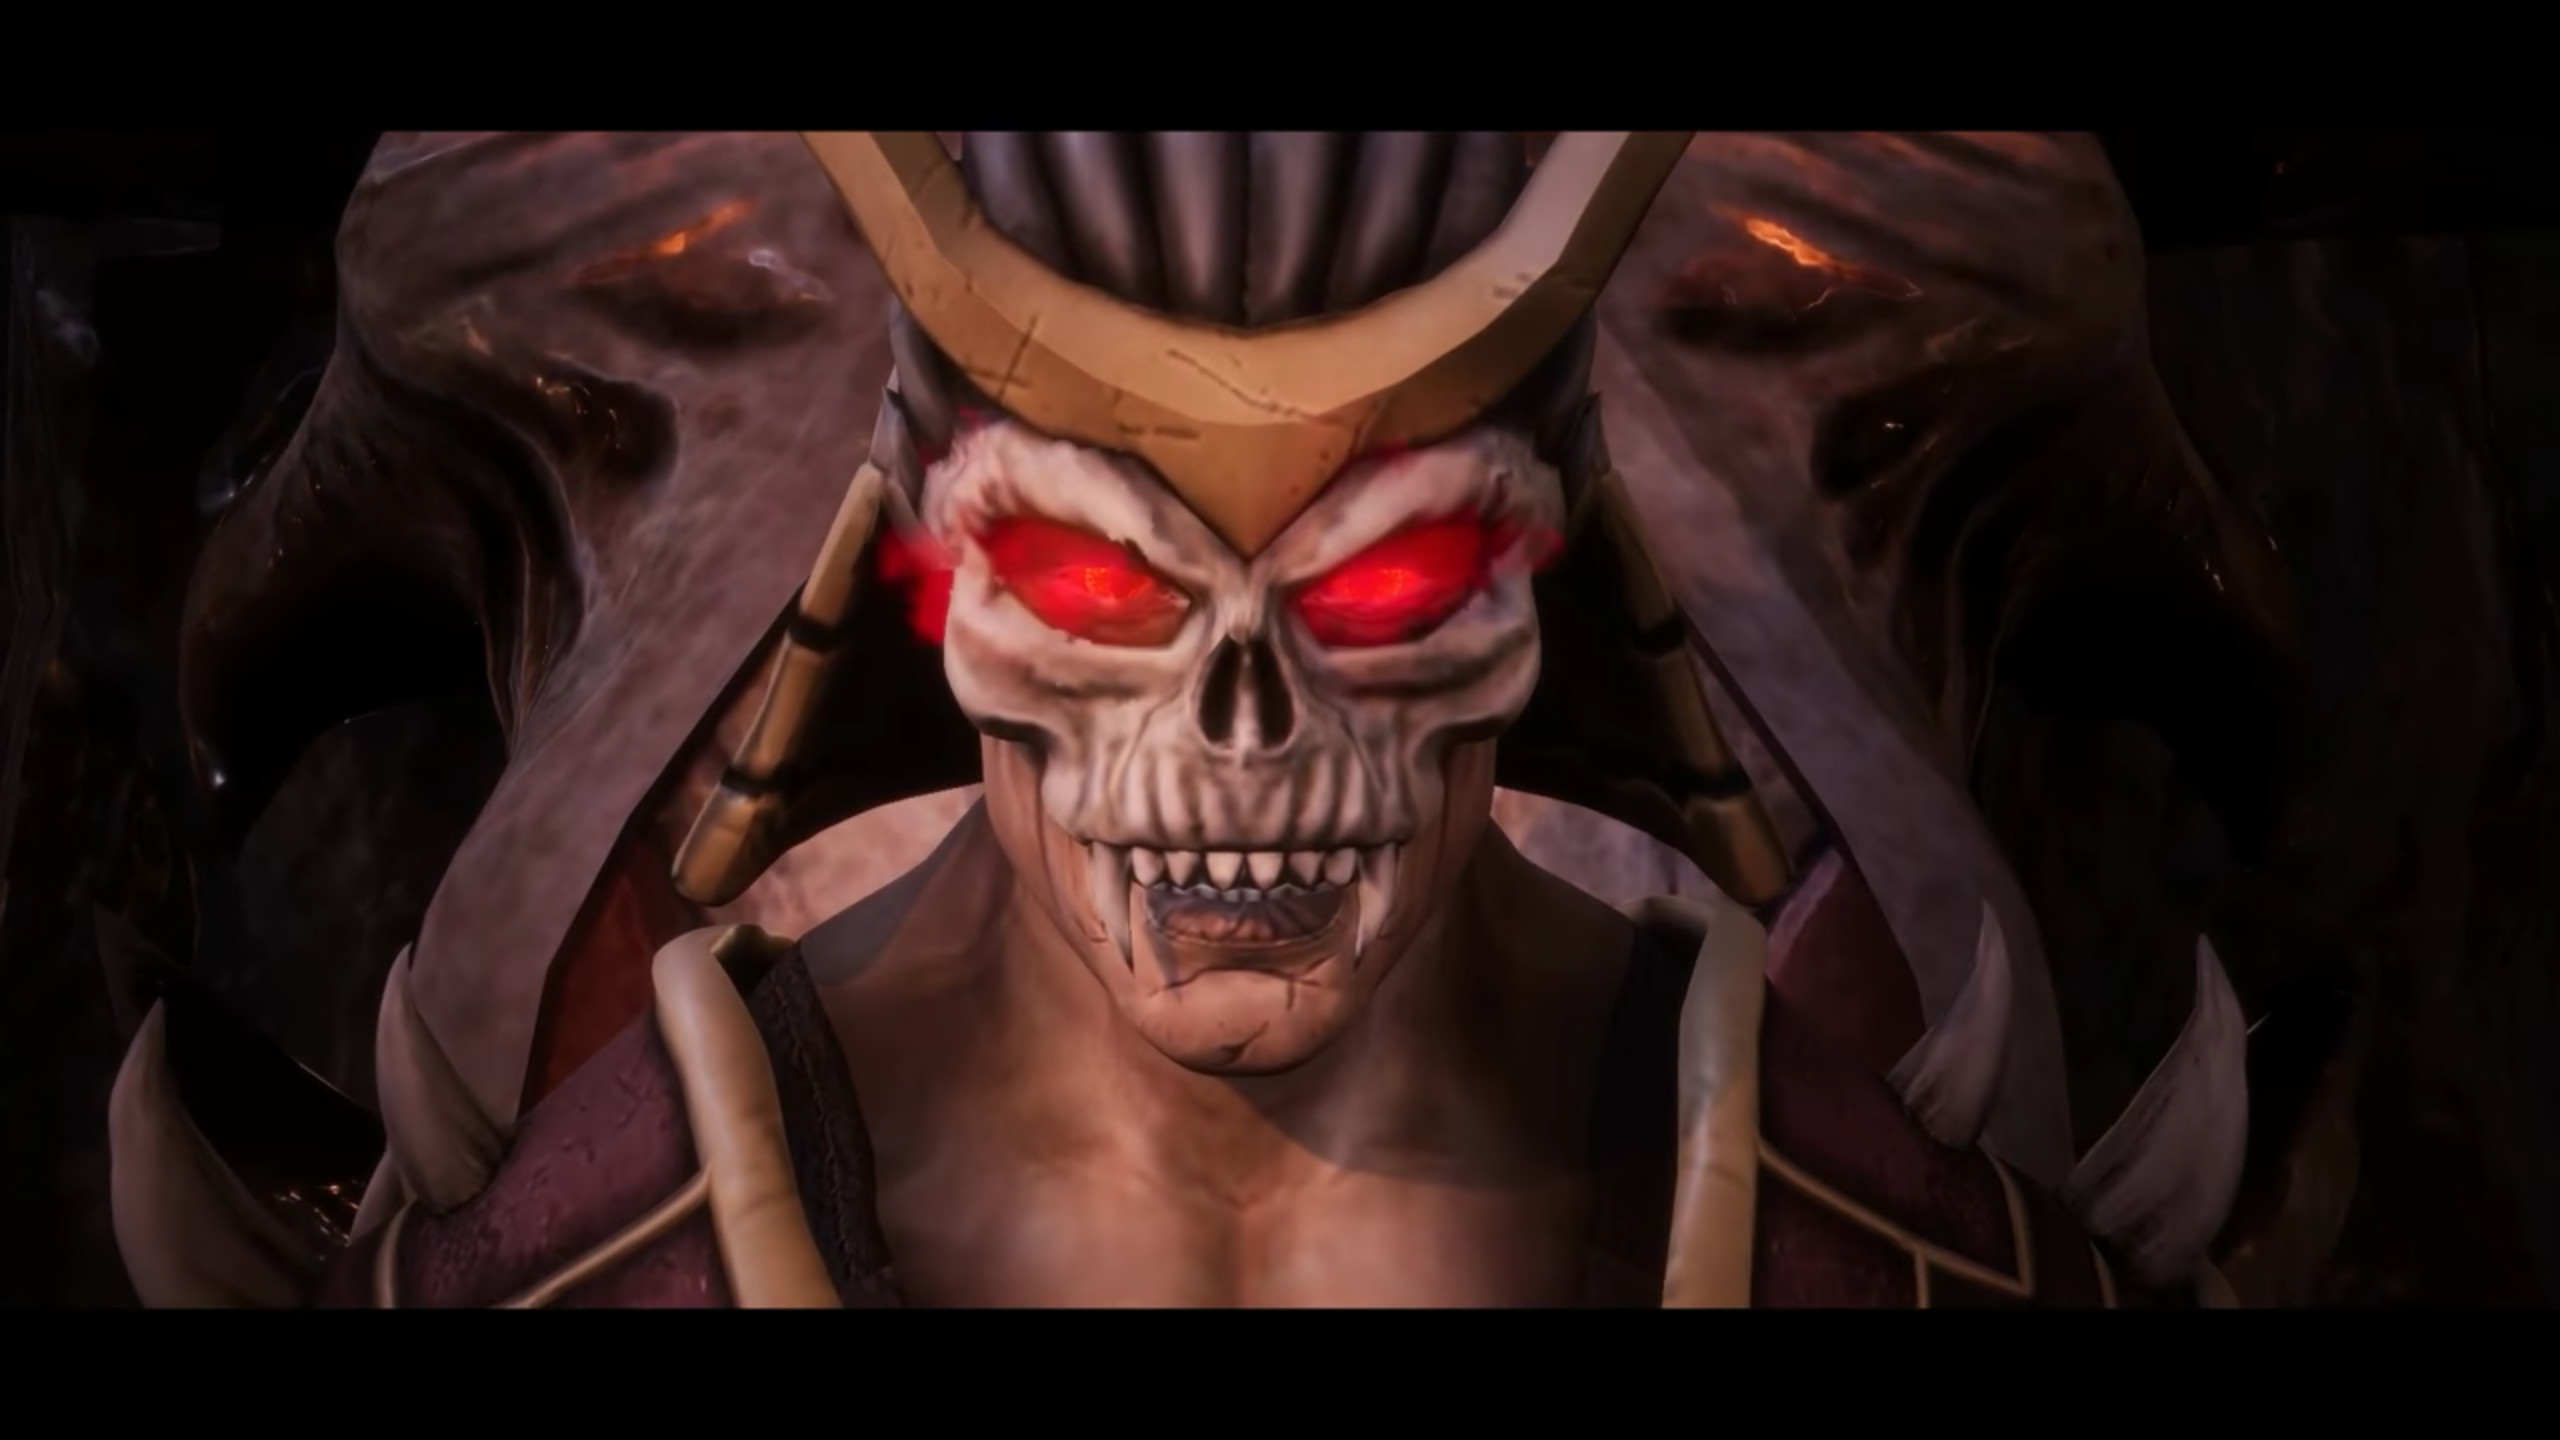 Mortal Kombat Shao Kahn Wallpaper ·①